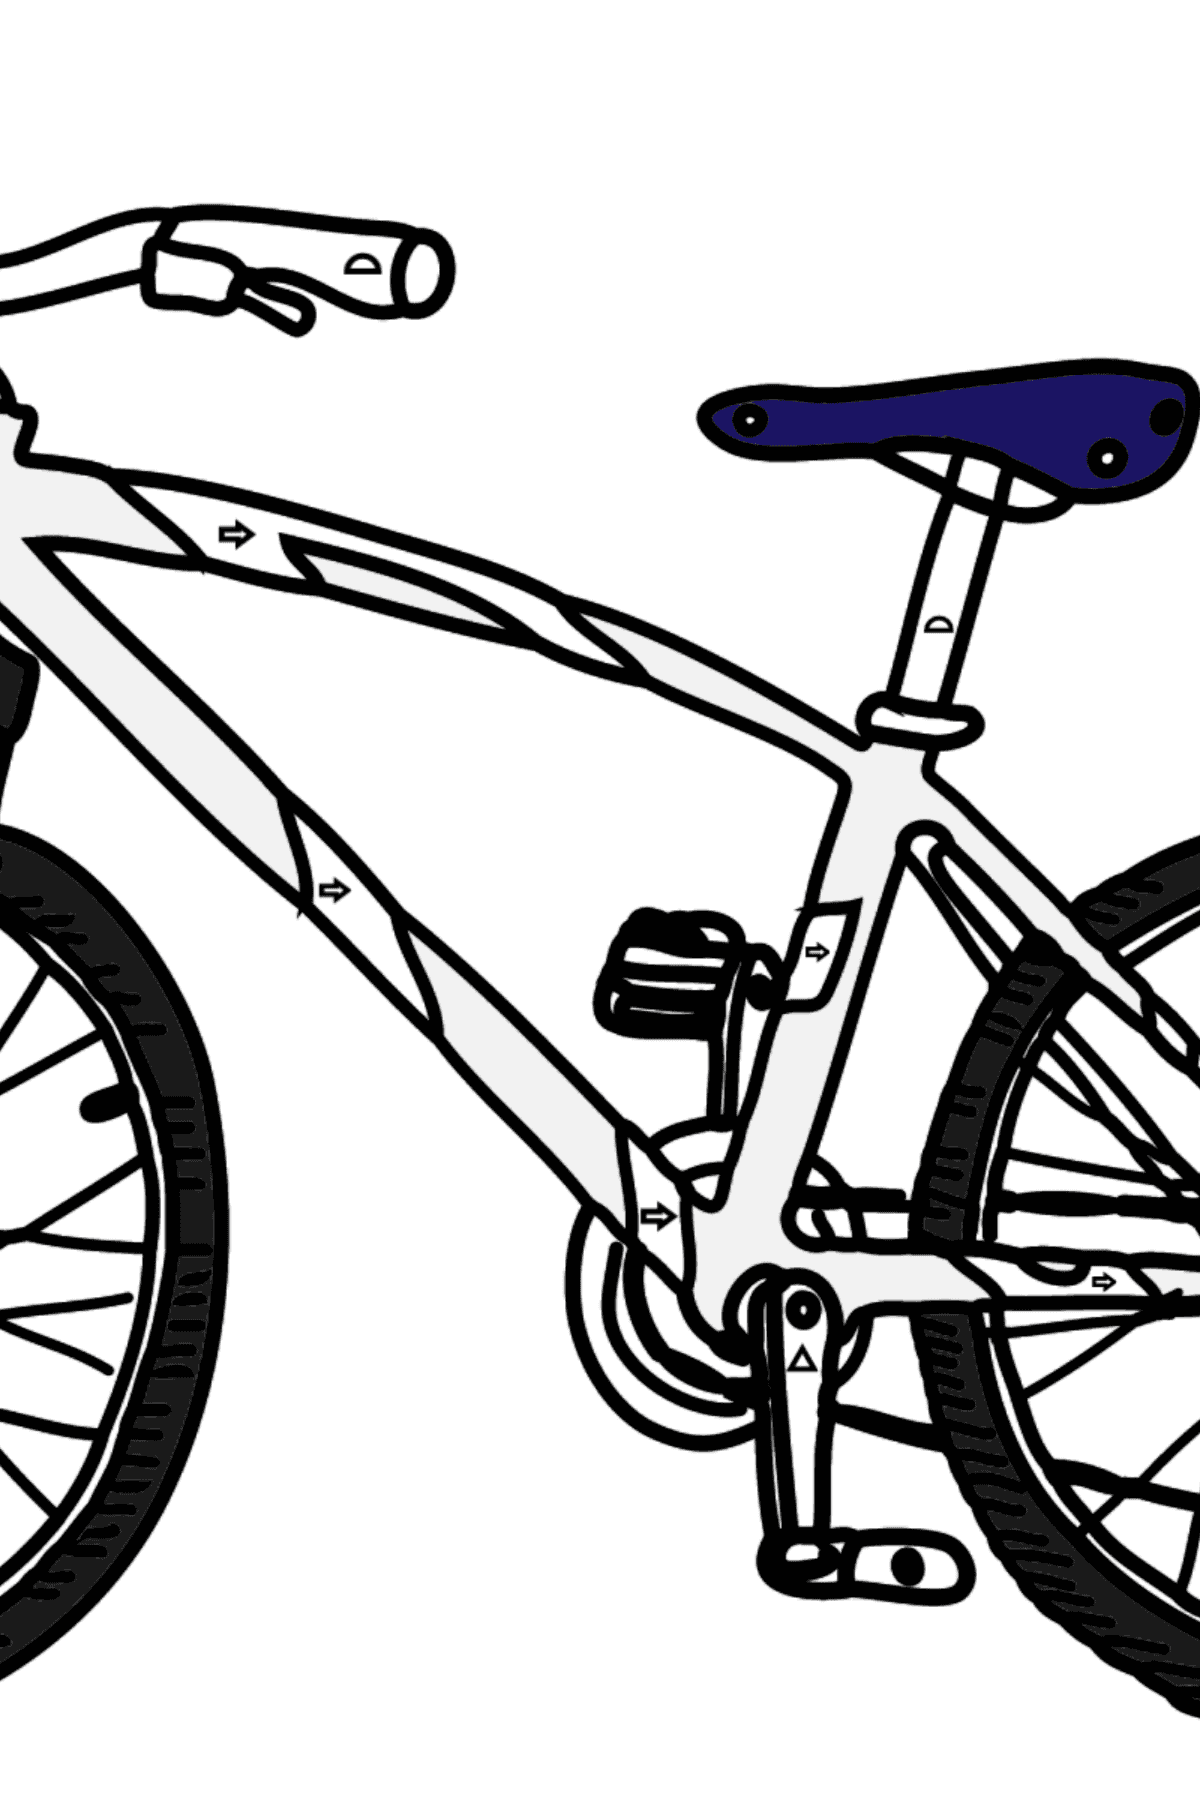 Coloring Page - A Sport Bike - Coloring by Geometric Shapes for Kids